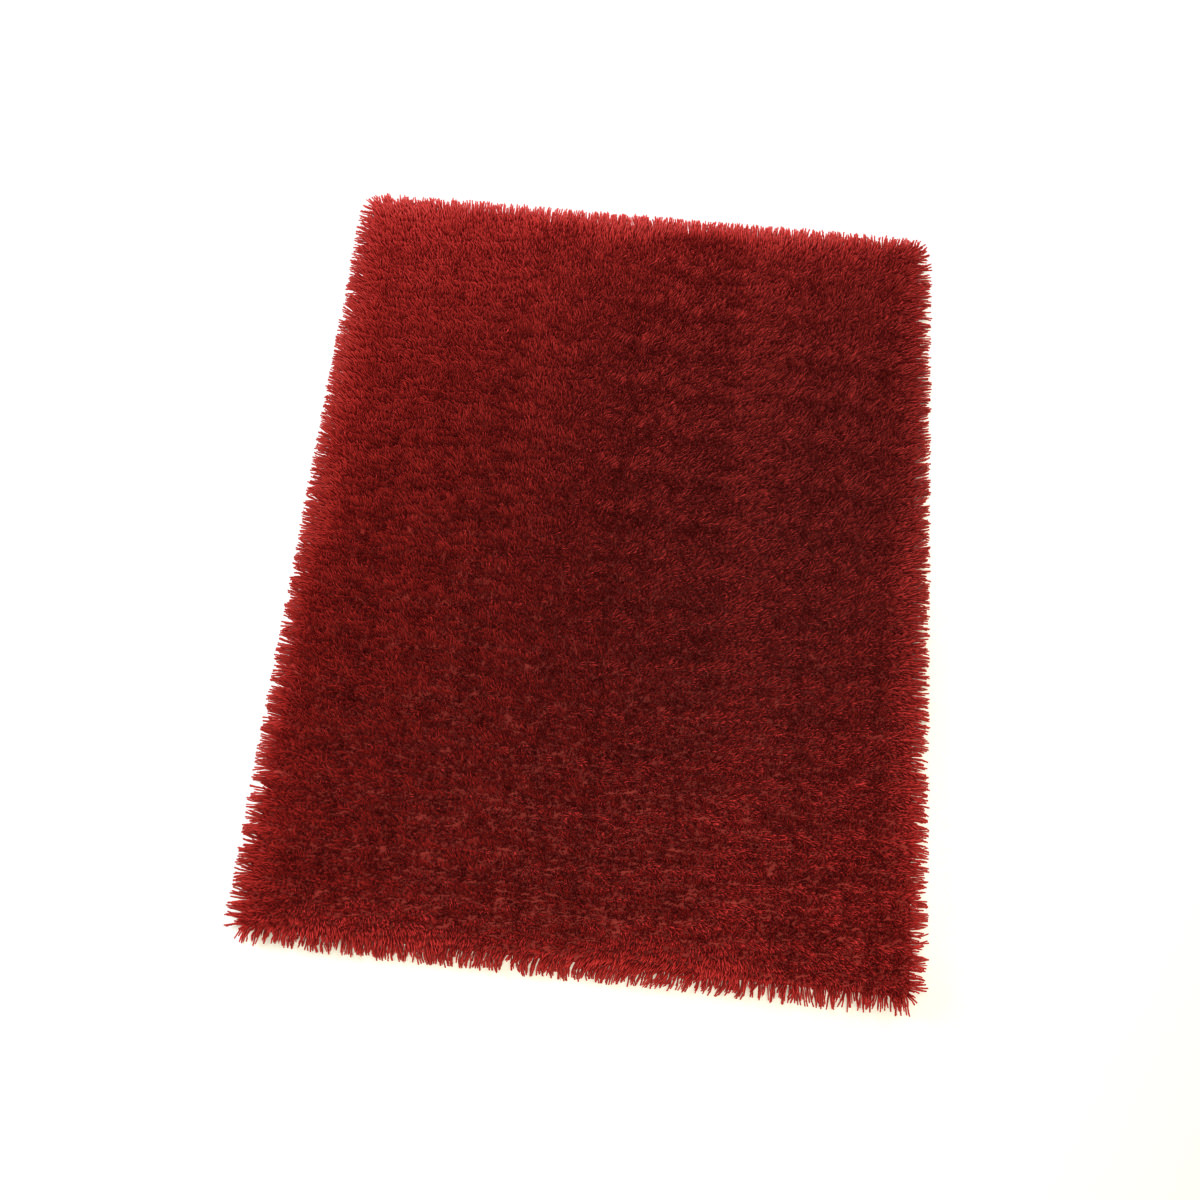 Top Carpet fur 3D model | CGTrader KP81